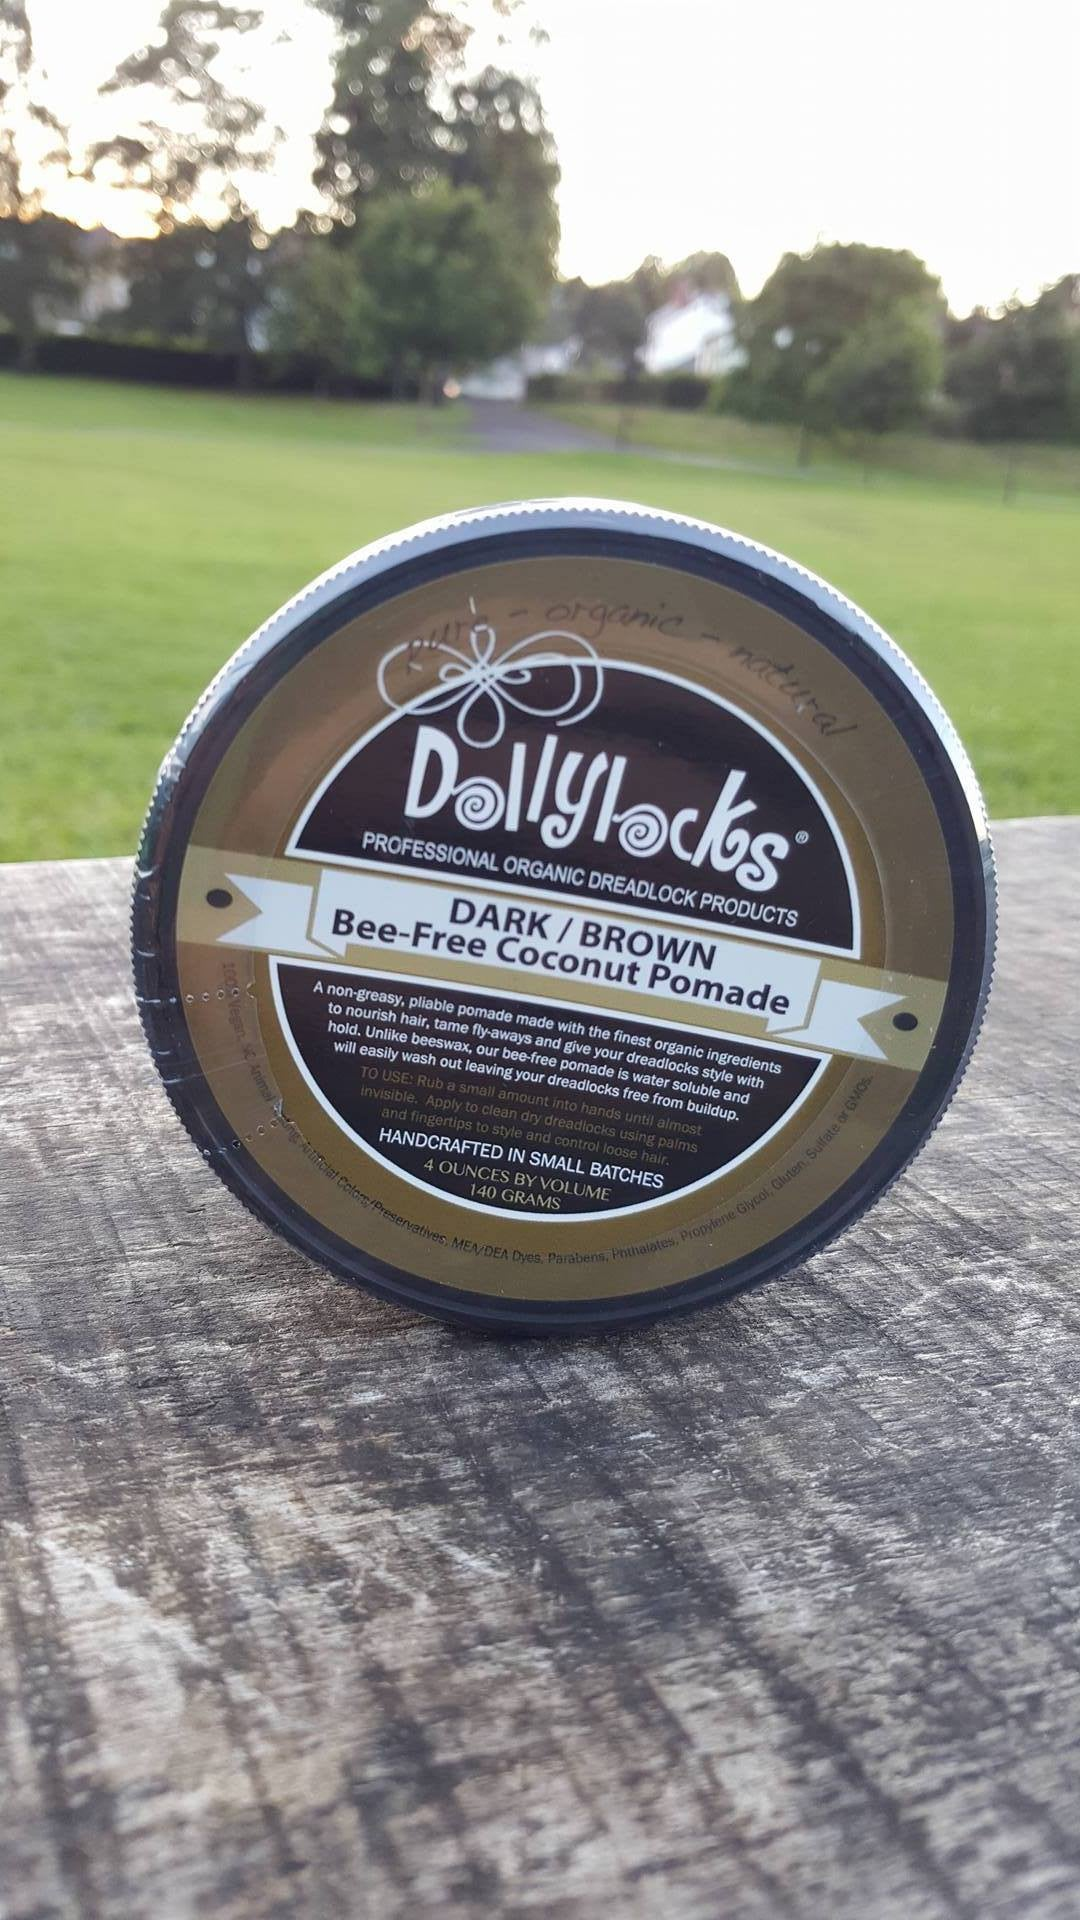 Dollylocks Dreadlocks Pomade 4oz Dark Shoot